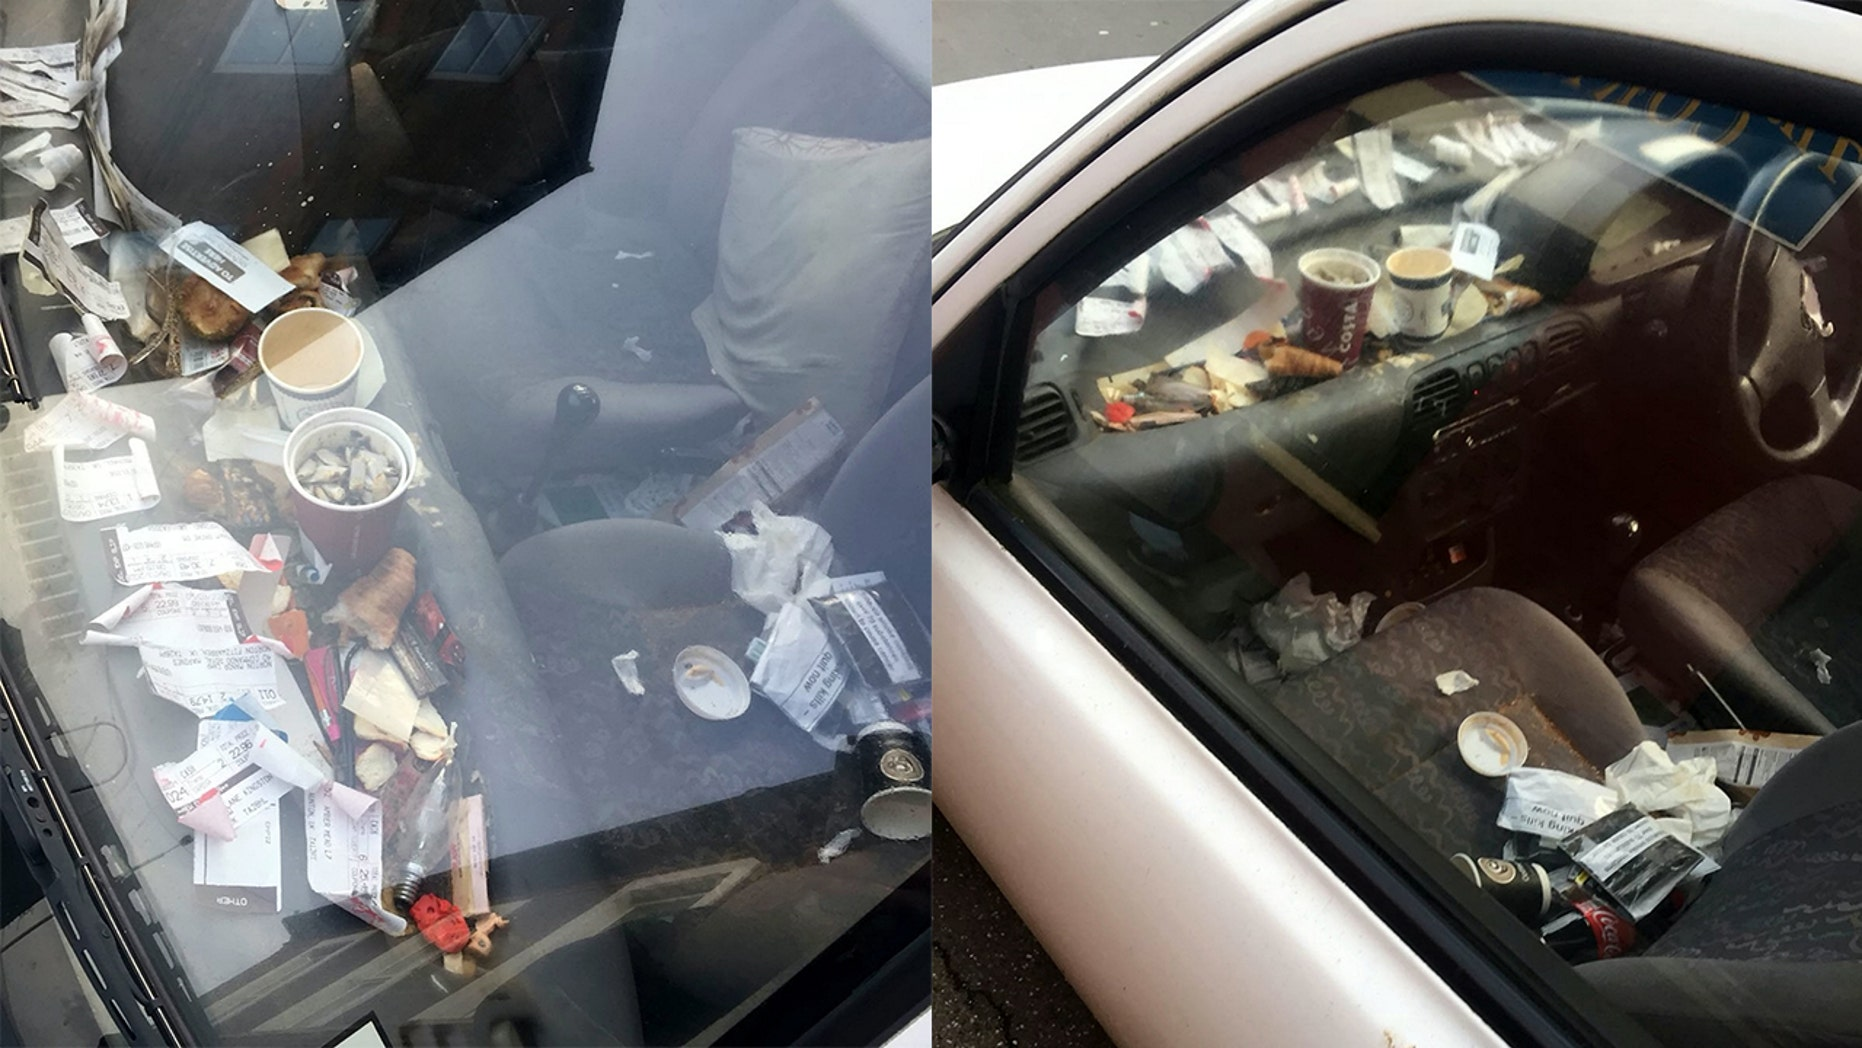 A Domino's delivery driver was suspended after photos of his messy car were sent to the pizza chain.